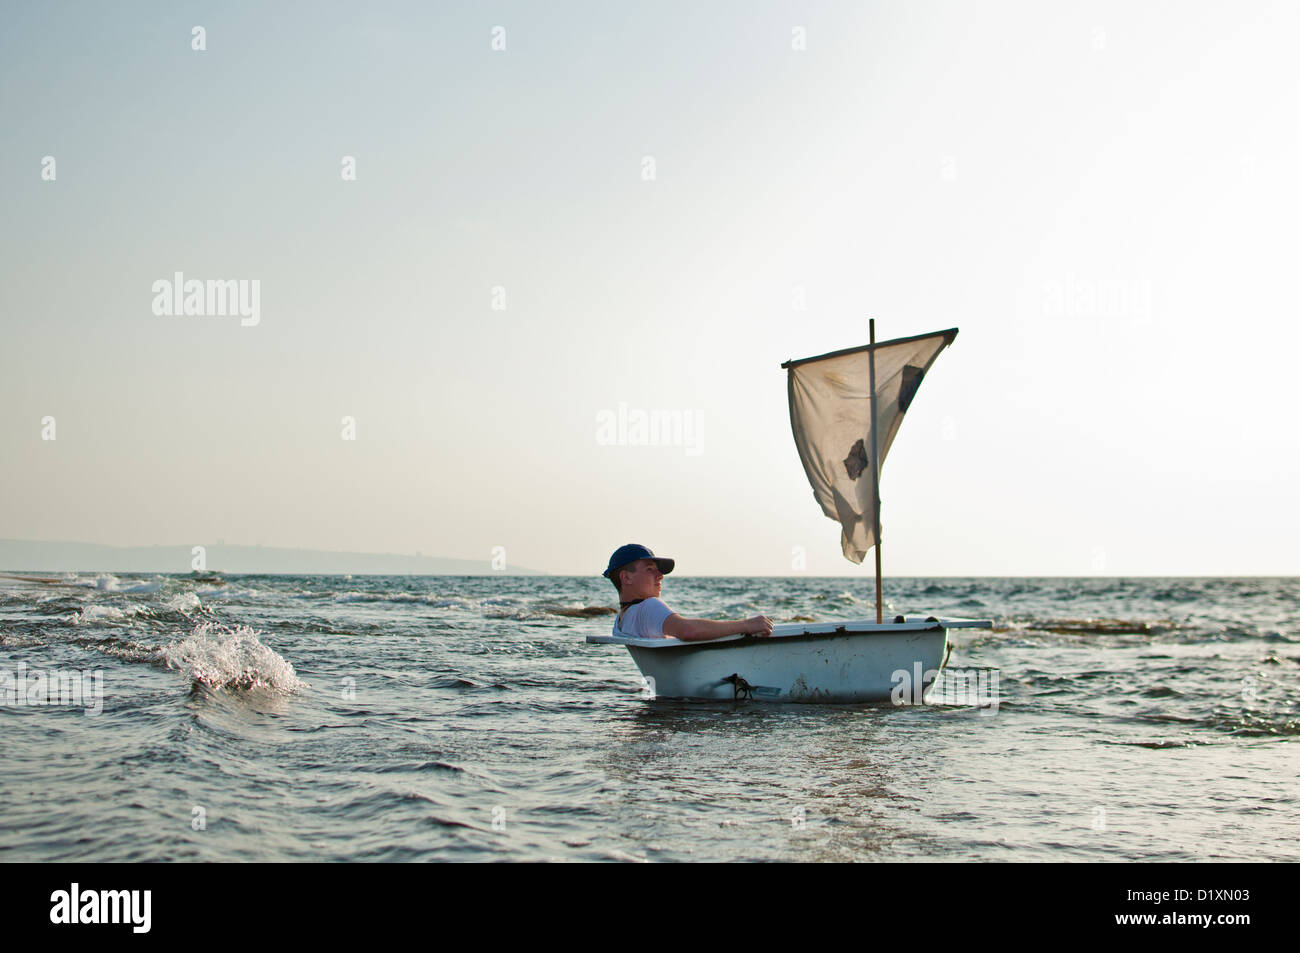 Man In A Bathtub Like Boat With A Sail In The Sea   Stock Image